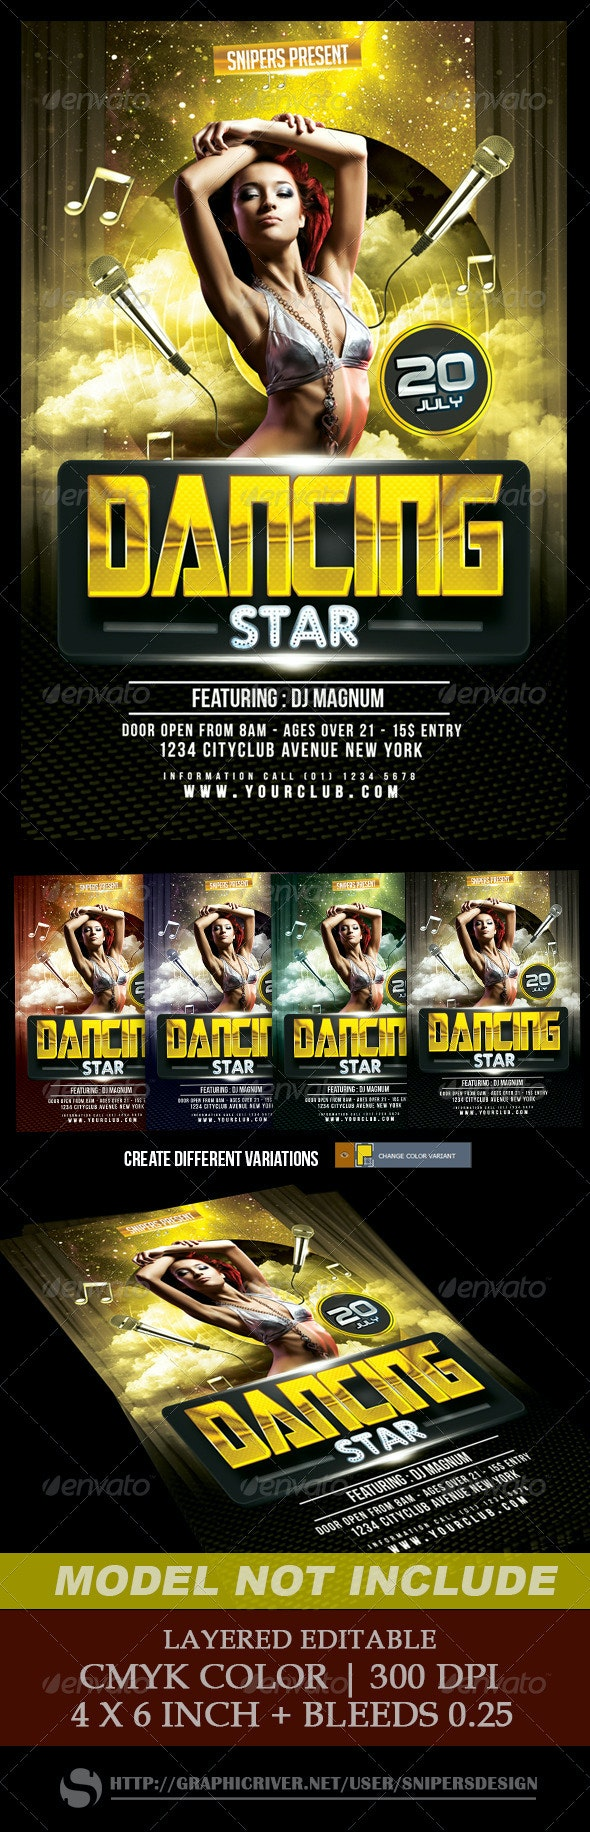 Dancing Star Flyer - Clubs & Parties Events